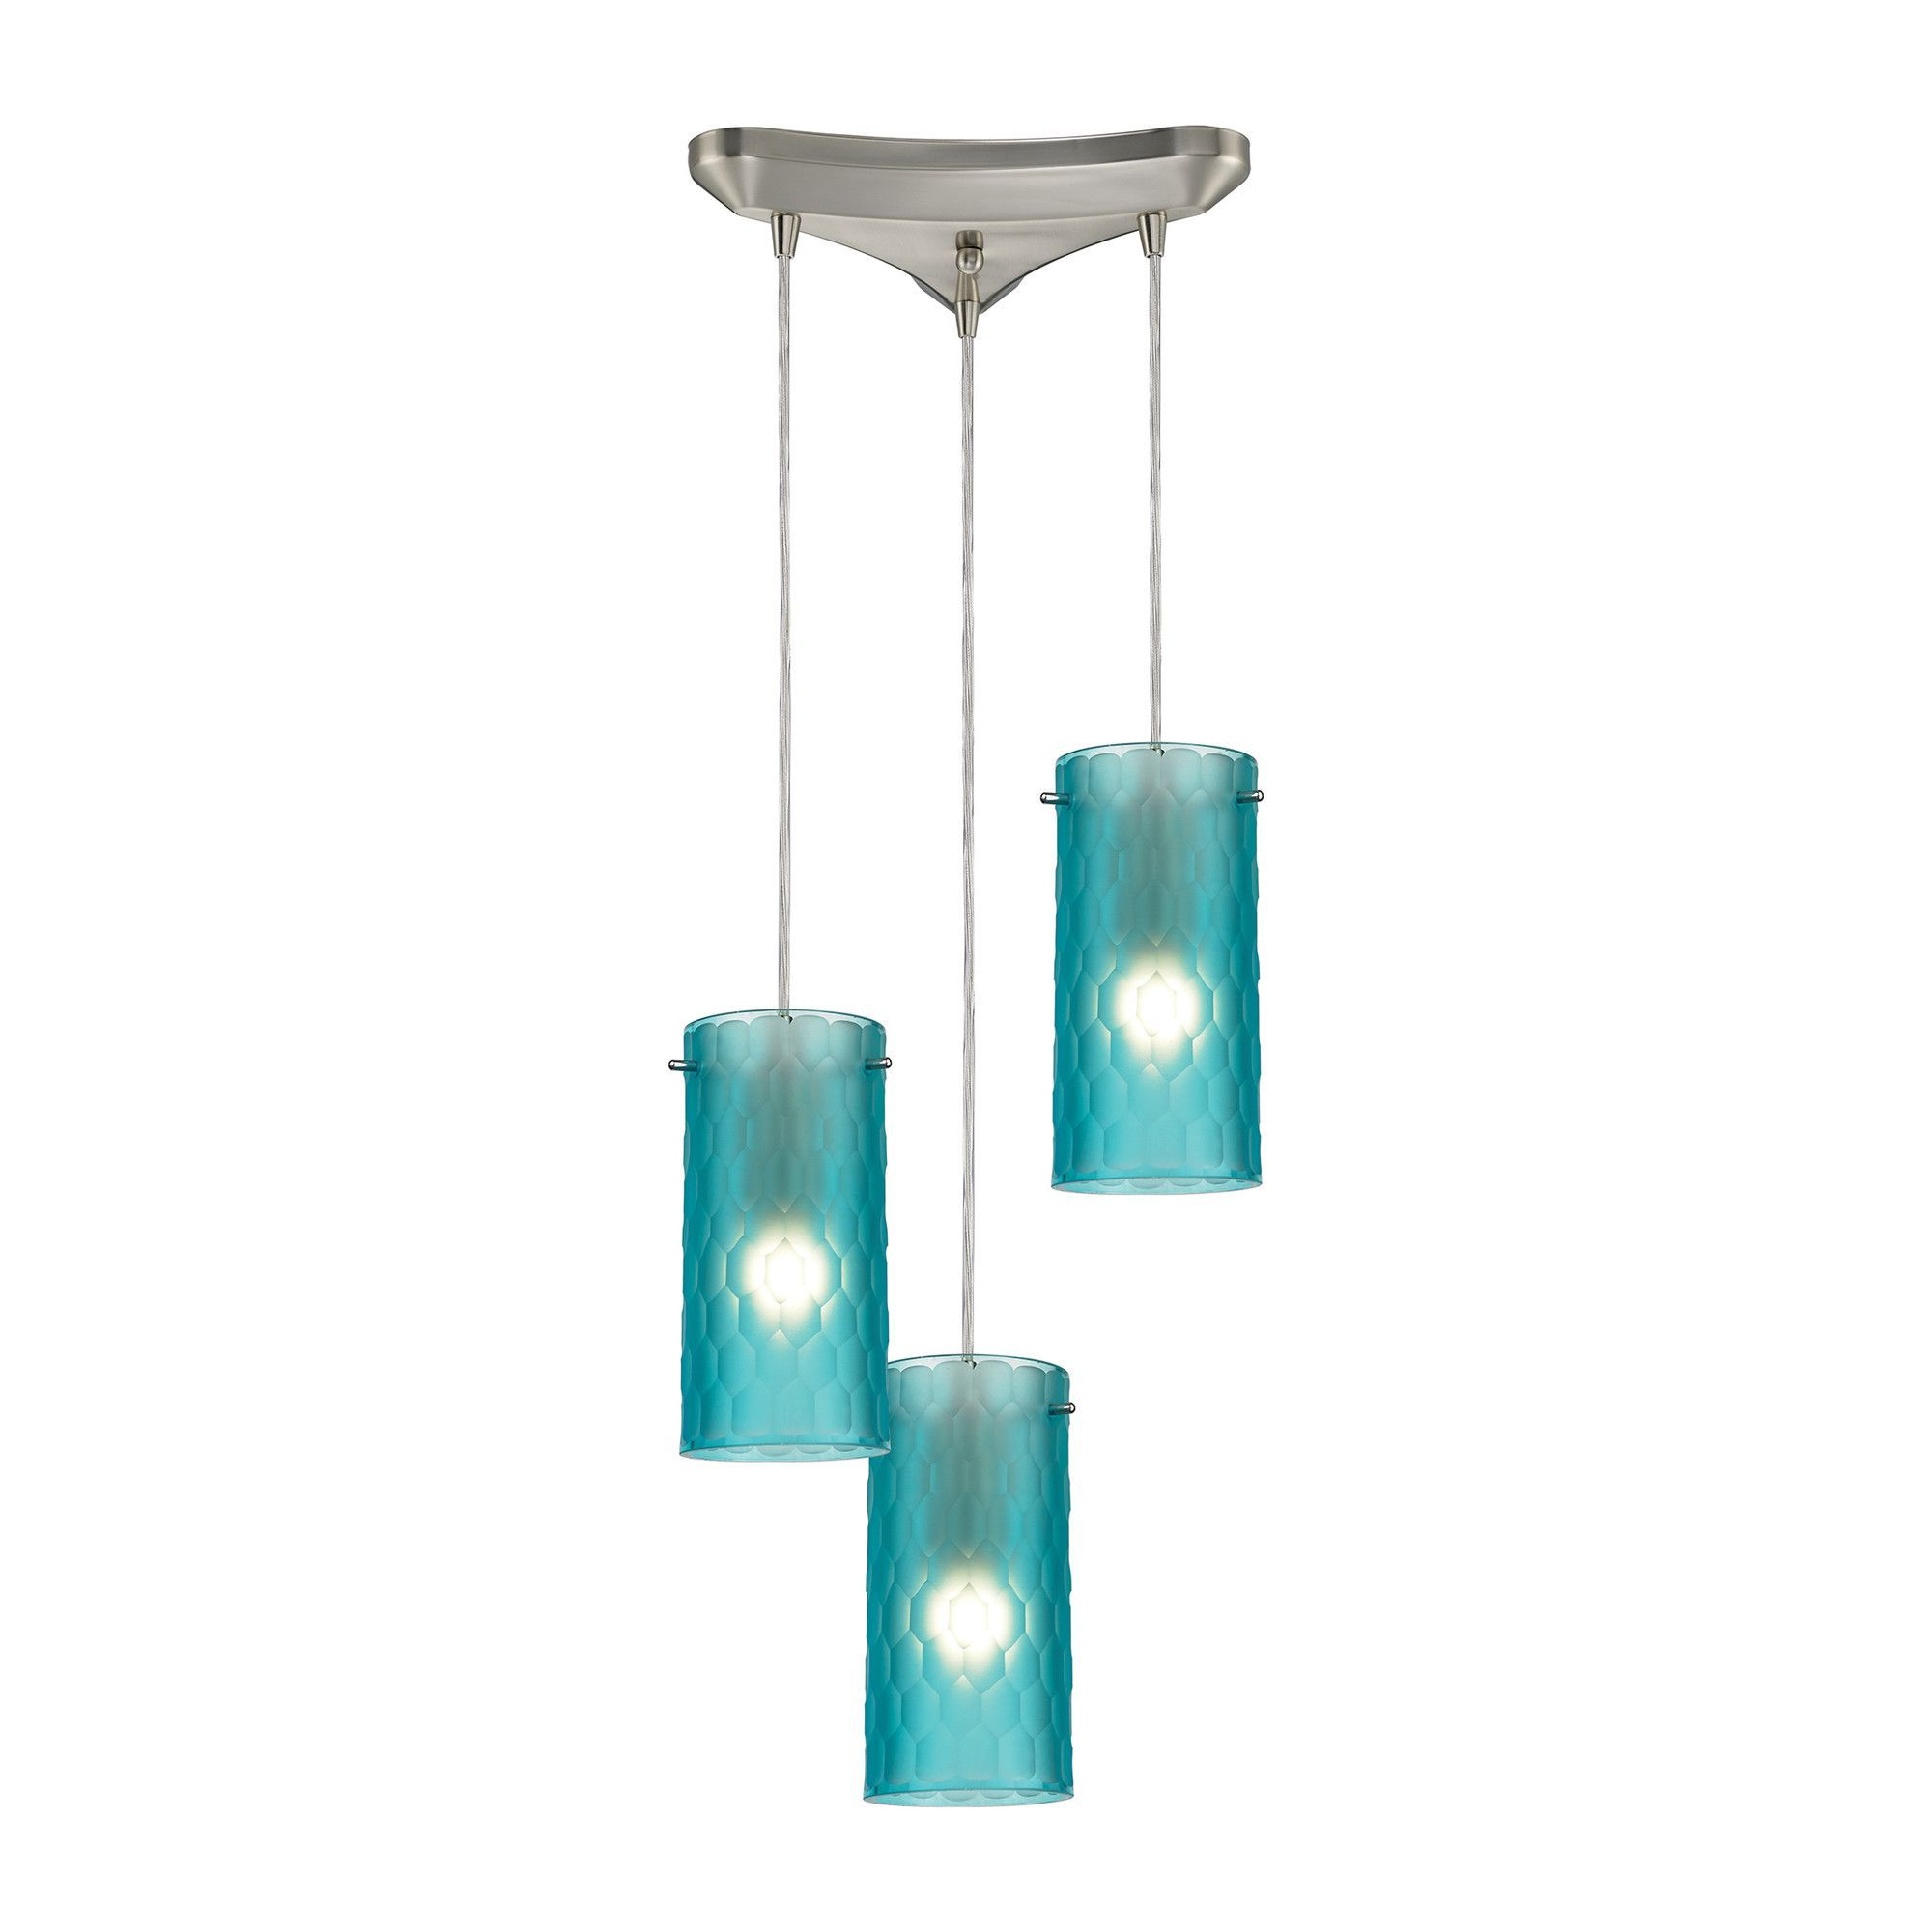 Synthesis light kitchen island pendant products pinterest